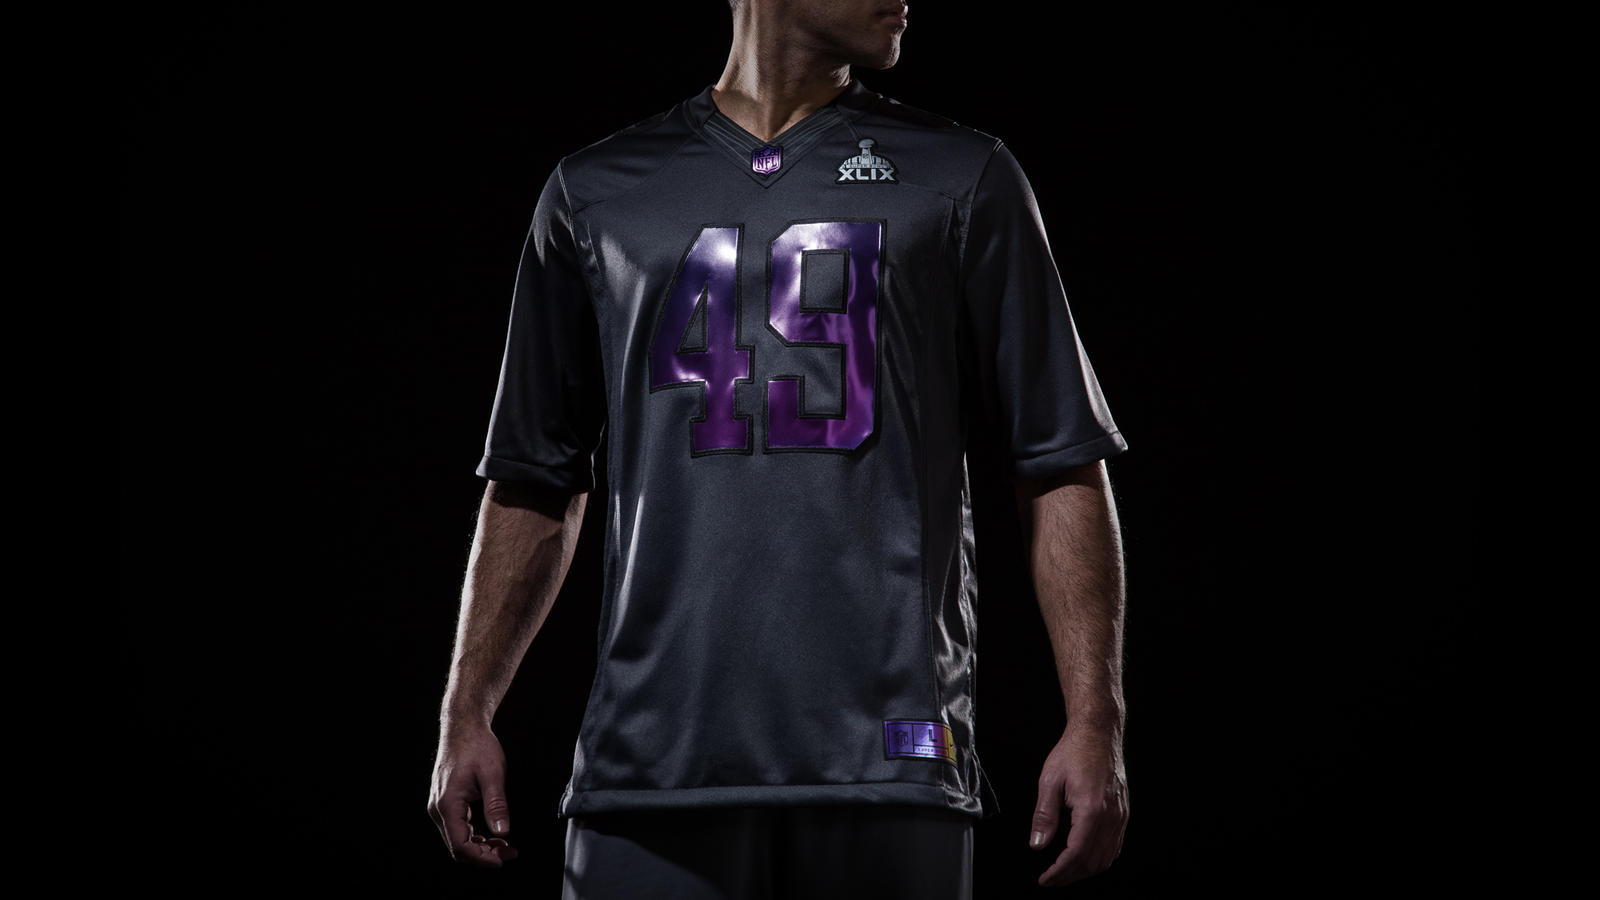 new product d5a40 44181 NFL NIKE SUPER BOWL XLIX COLLECTION UNVEILED - Nike News